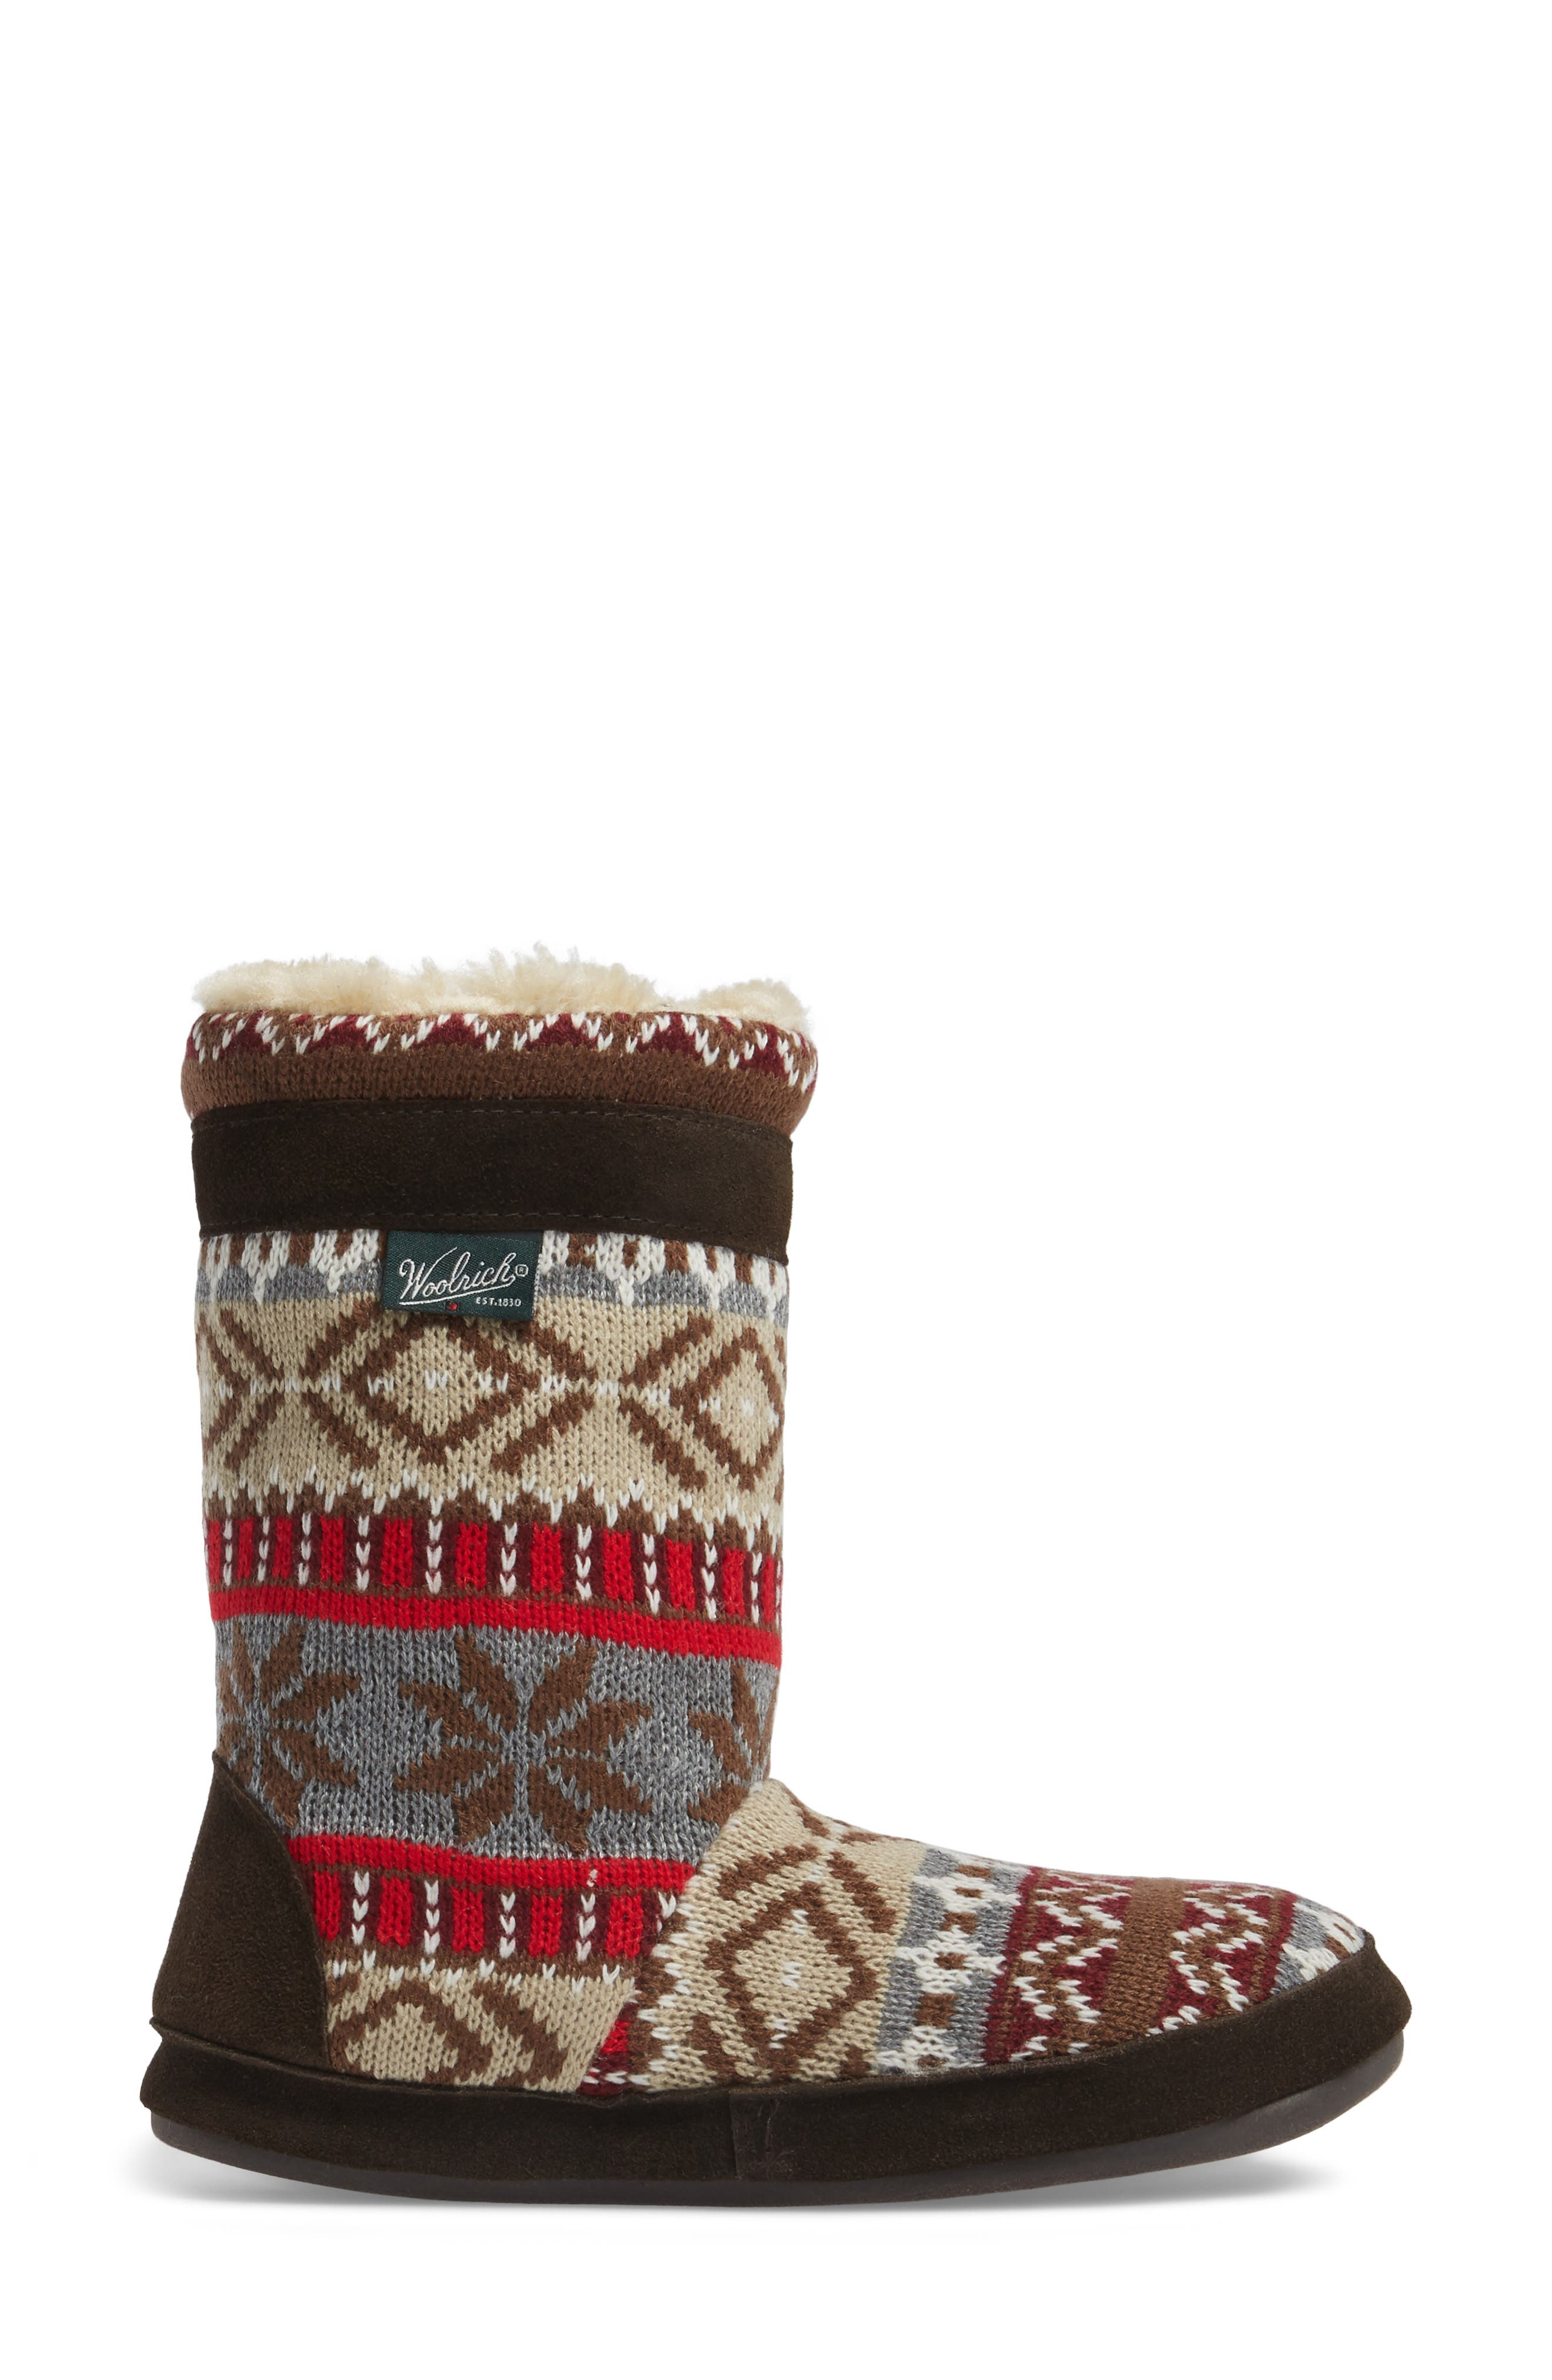 Alternate Image 3  - Woolrich Whitecap Knit Slipper Bootie (Women)